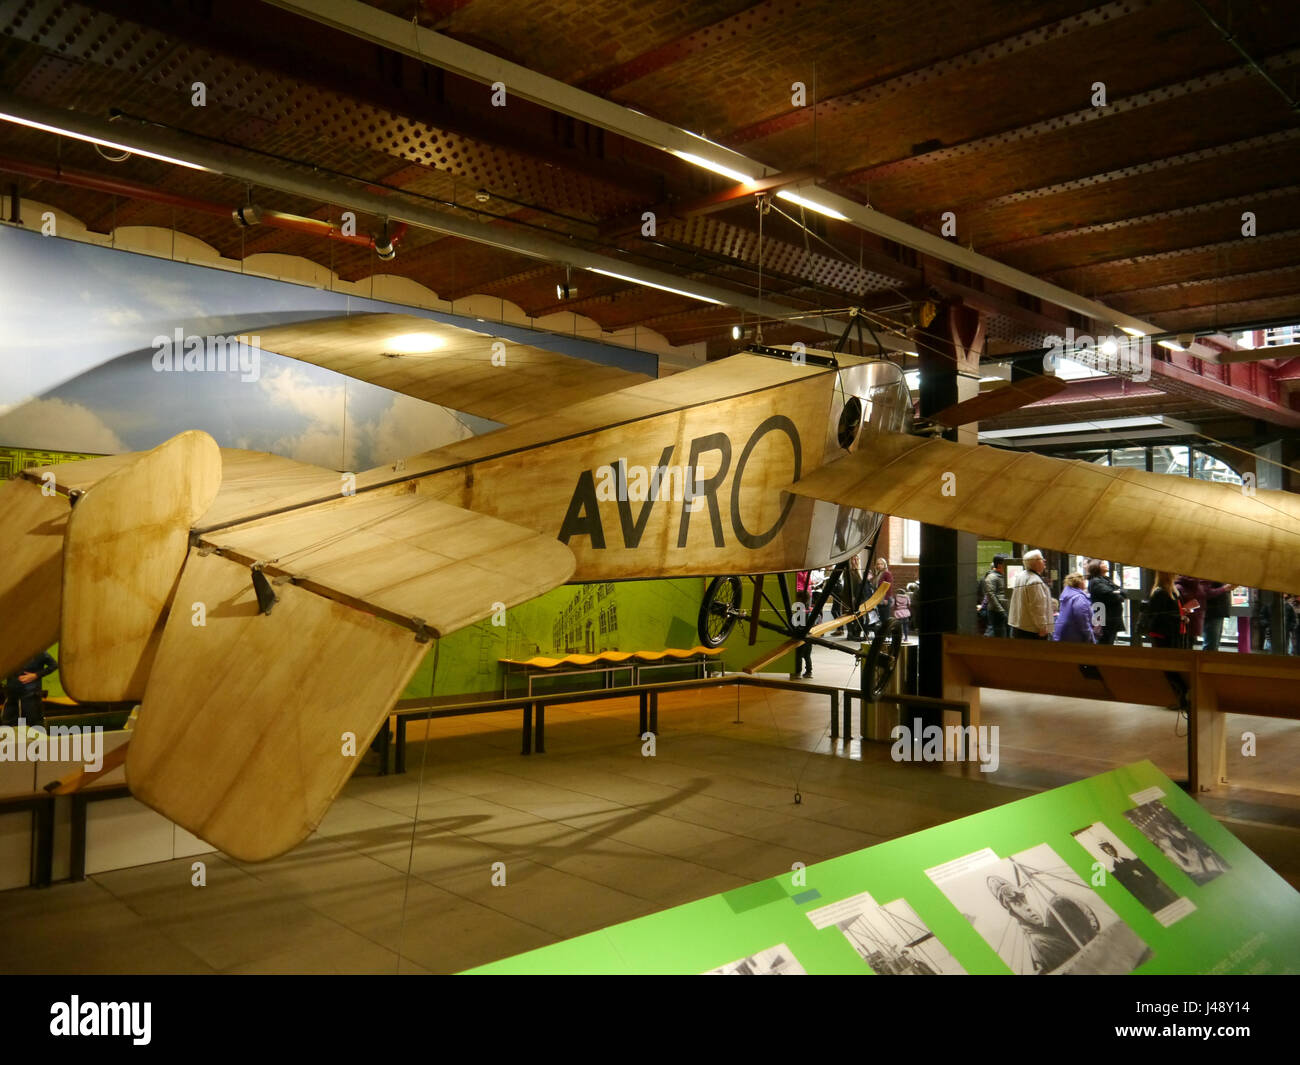 The Manchester-built Avro F, the first enclosed-cabin monoplane to fly in the world - Stock Image